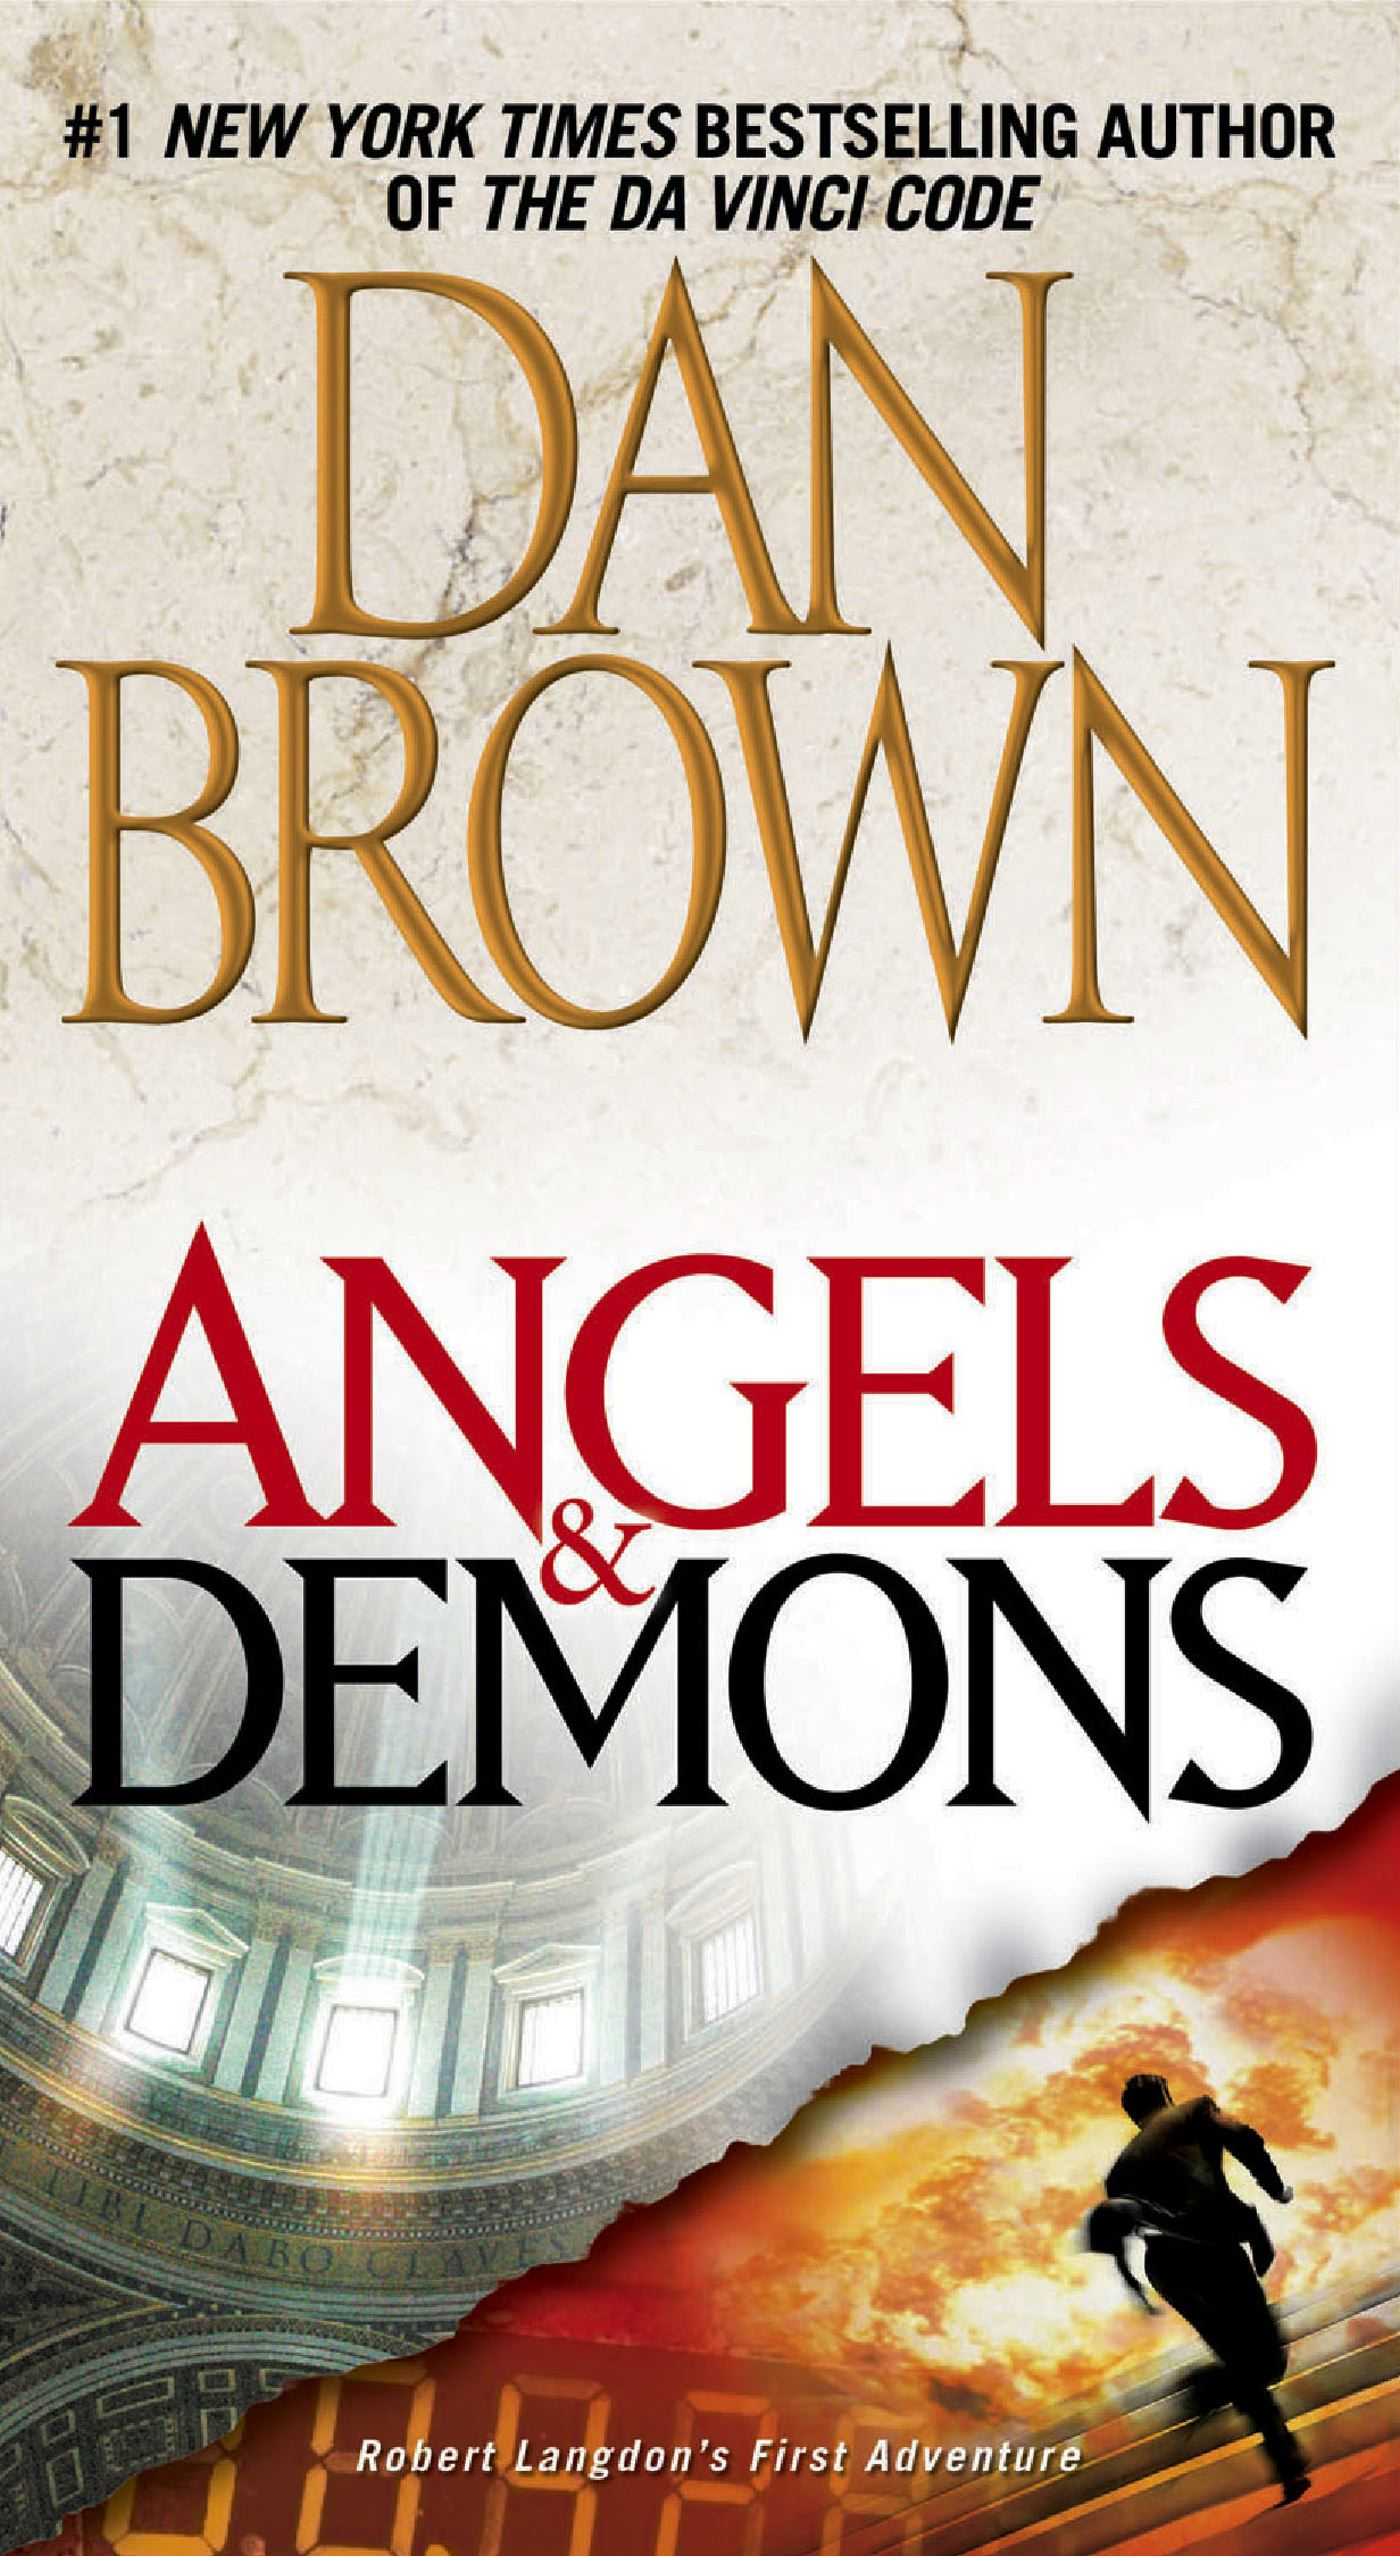 Angels-demons-9781416524793_hr